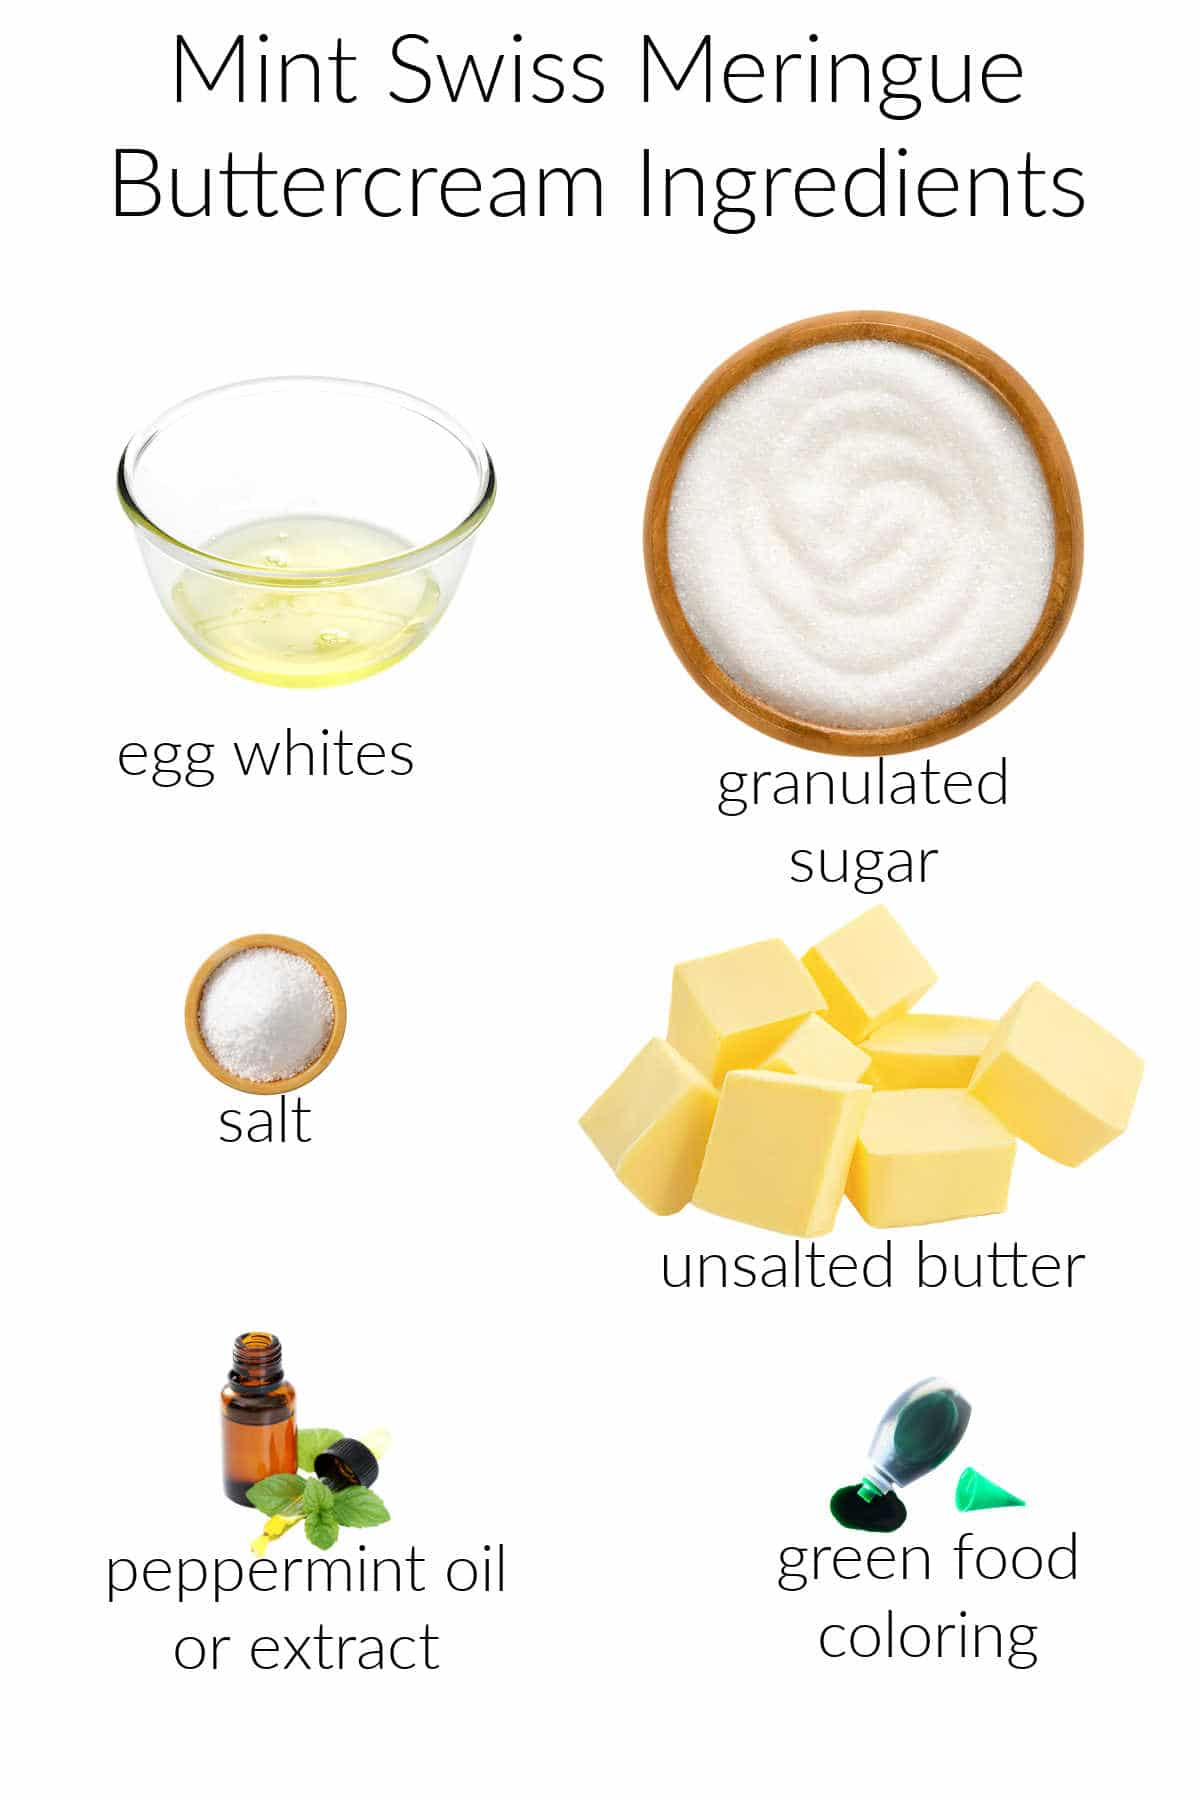 Collage of ingredients for making mint swiss meringue buttercream.